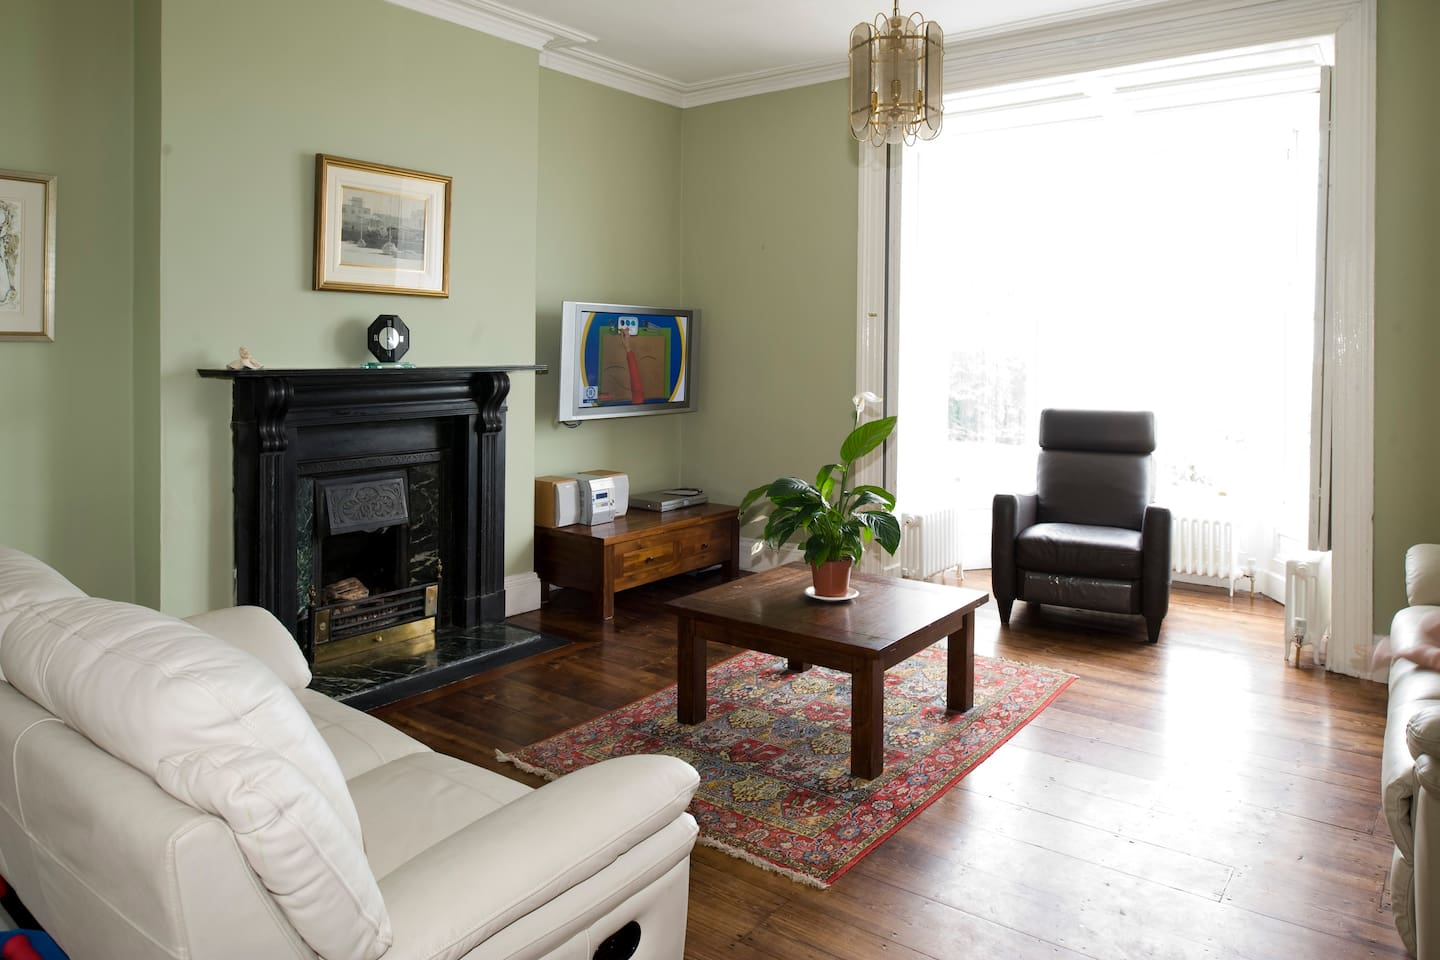 Living Room with recliner sofas and widescreen satellite TV